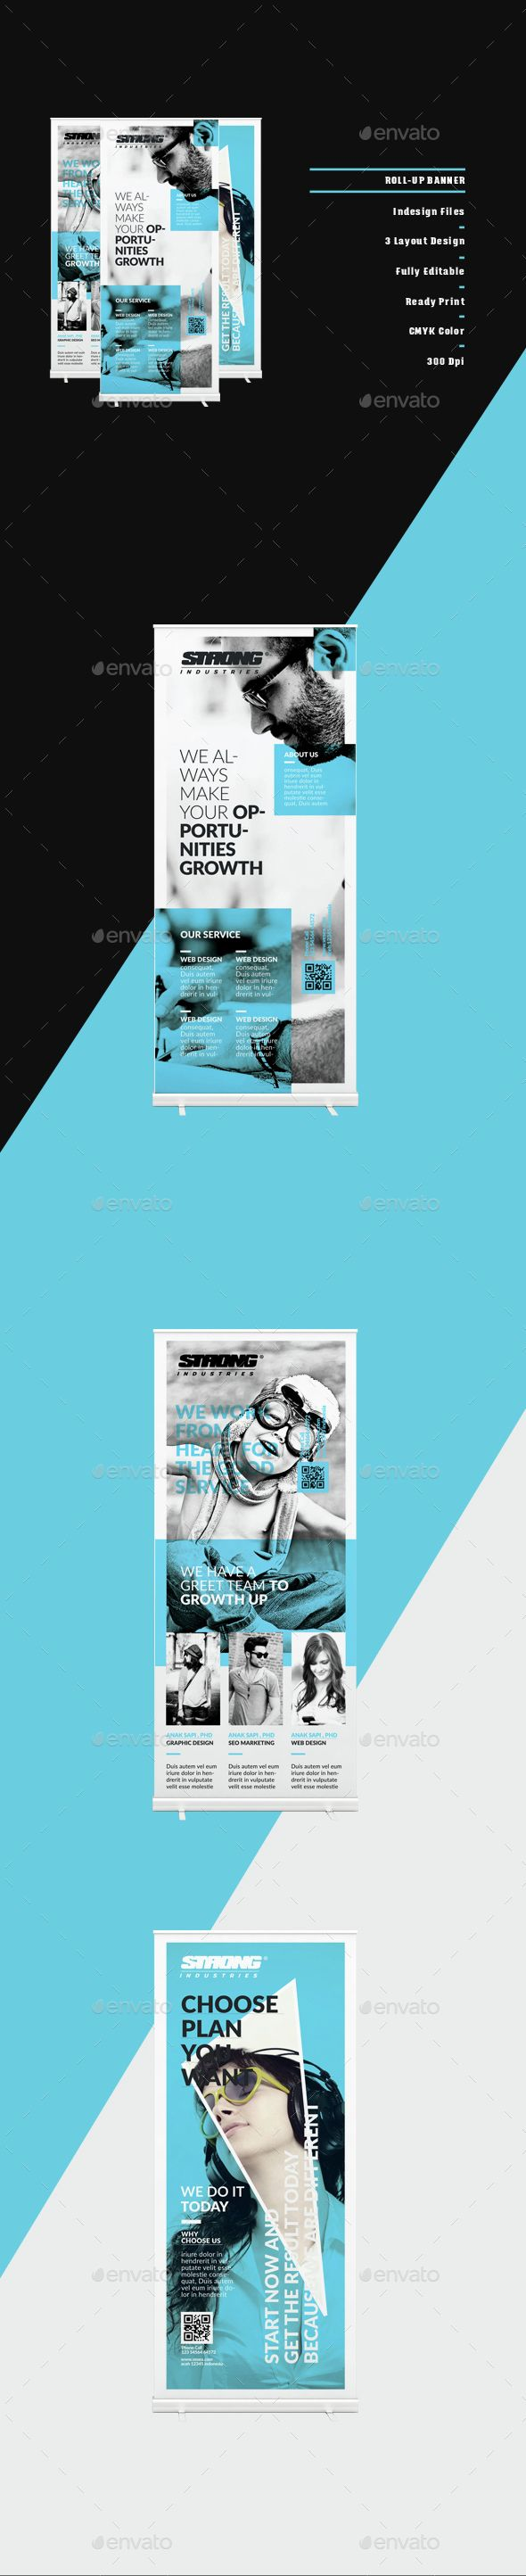 Banner — InDesign INDD #photo #set • Available here → https://graphicriver.net/item/banner/14821565?ref=pxcr